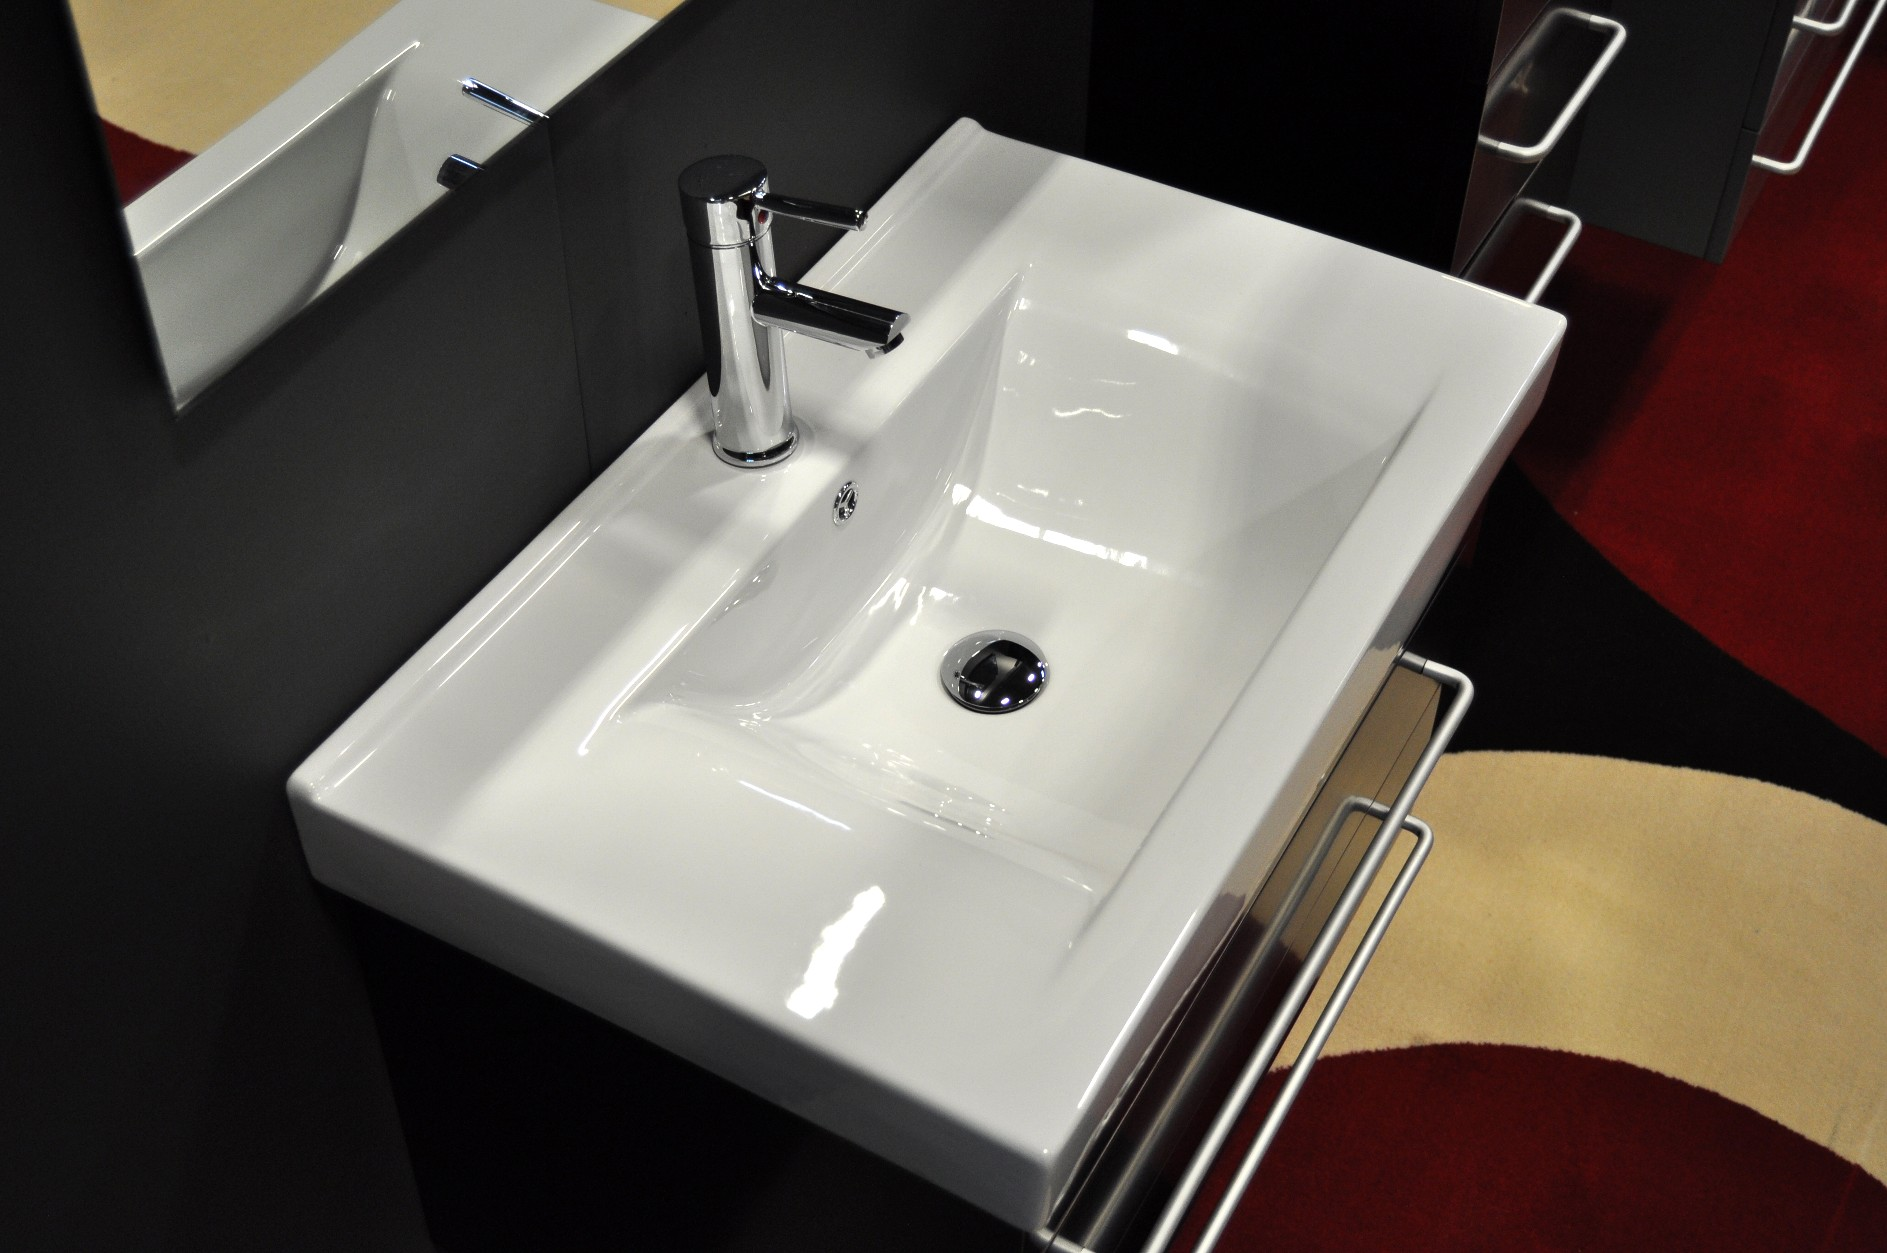 Awesome mirabelle sinks with stainless steel-faucet and square miror for bathroom with mirabelle undermount sink